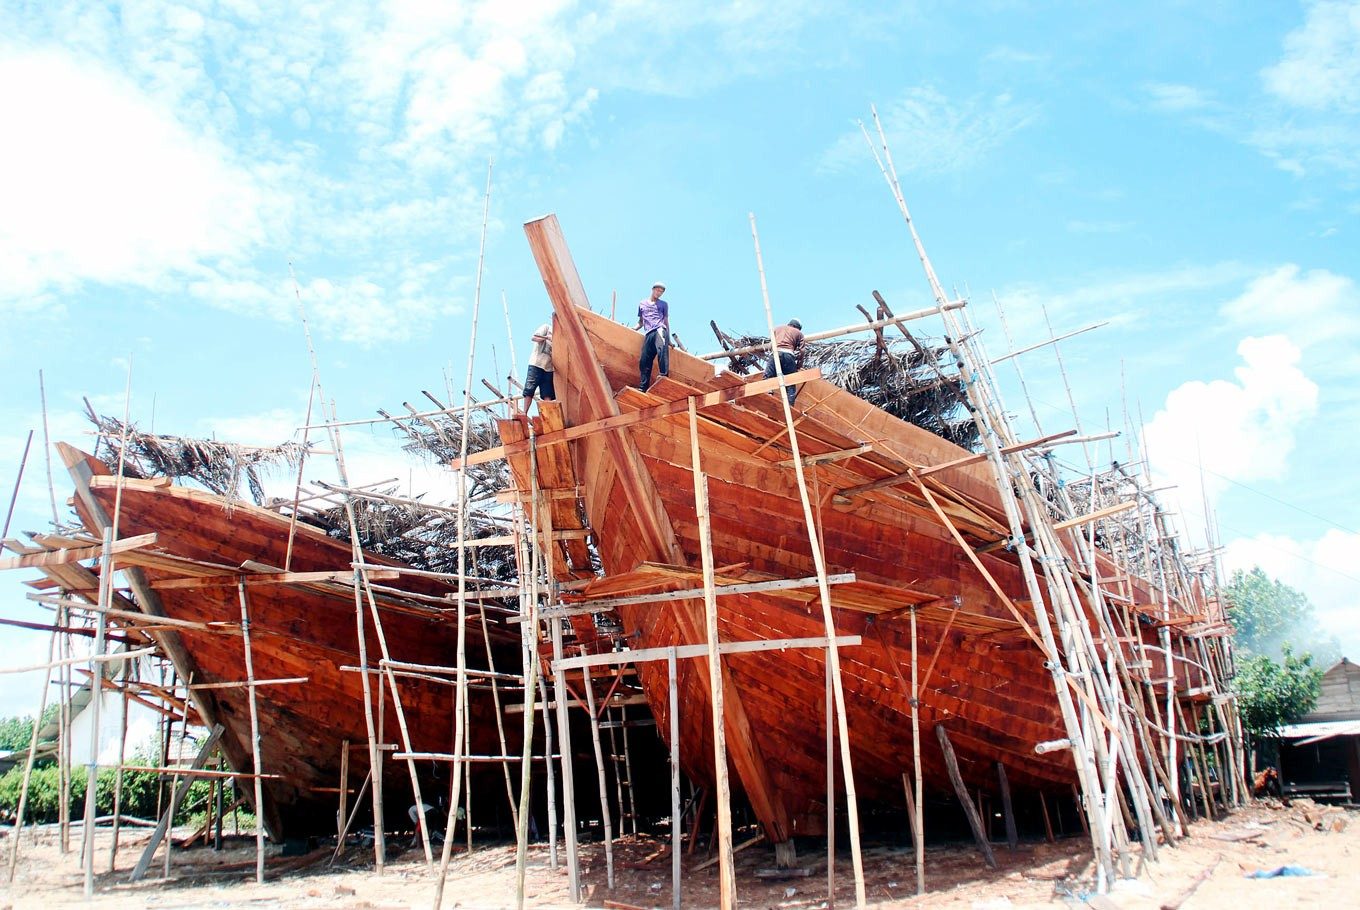 Long project: It requires four to six months to finish a ship of around 20 meters in length and 10 meters in width.